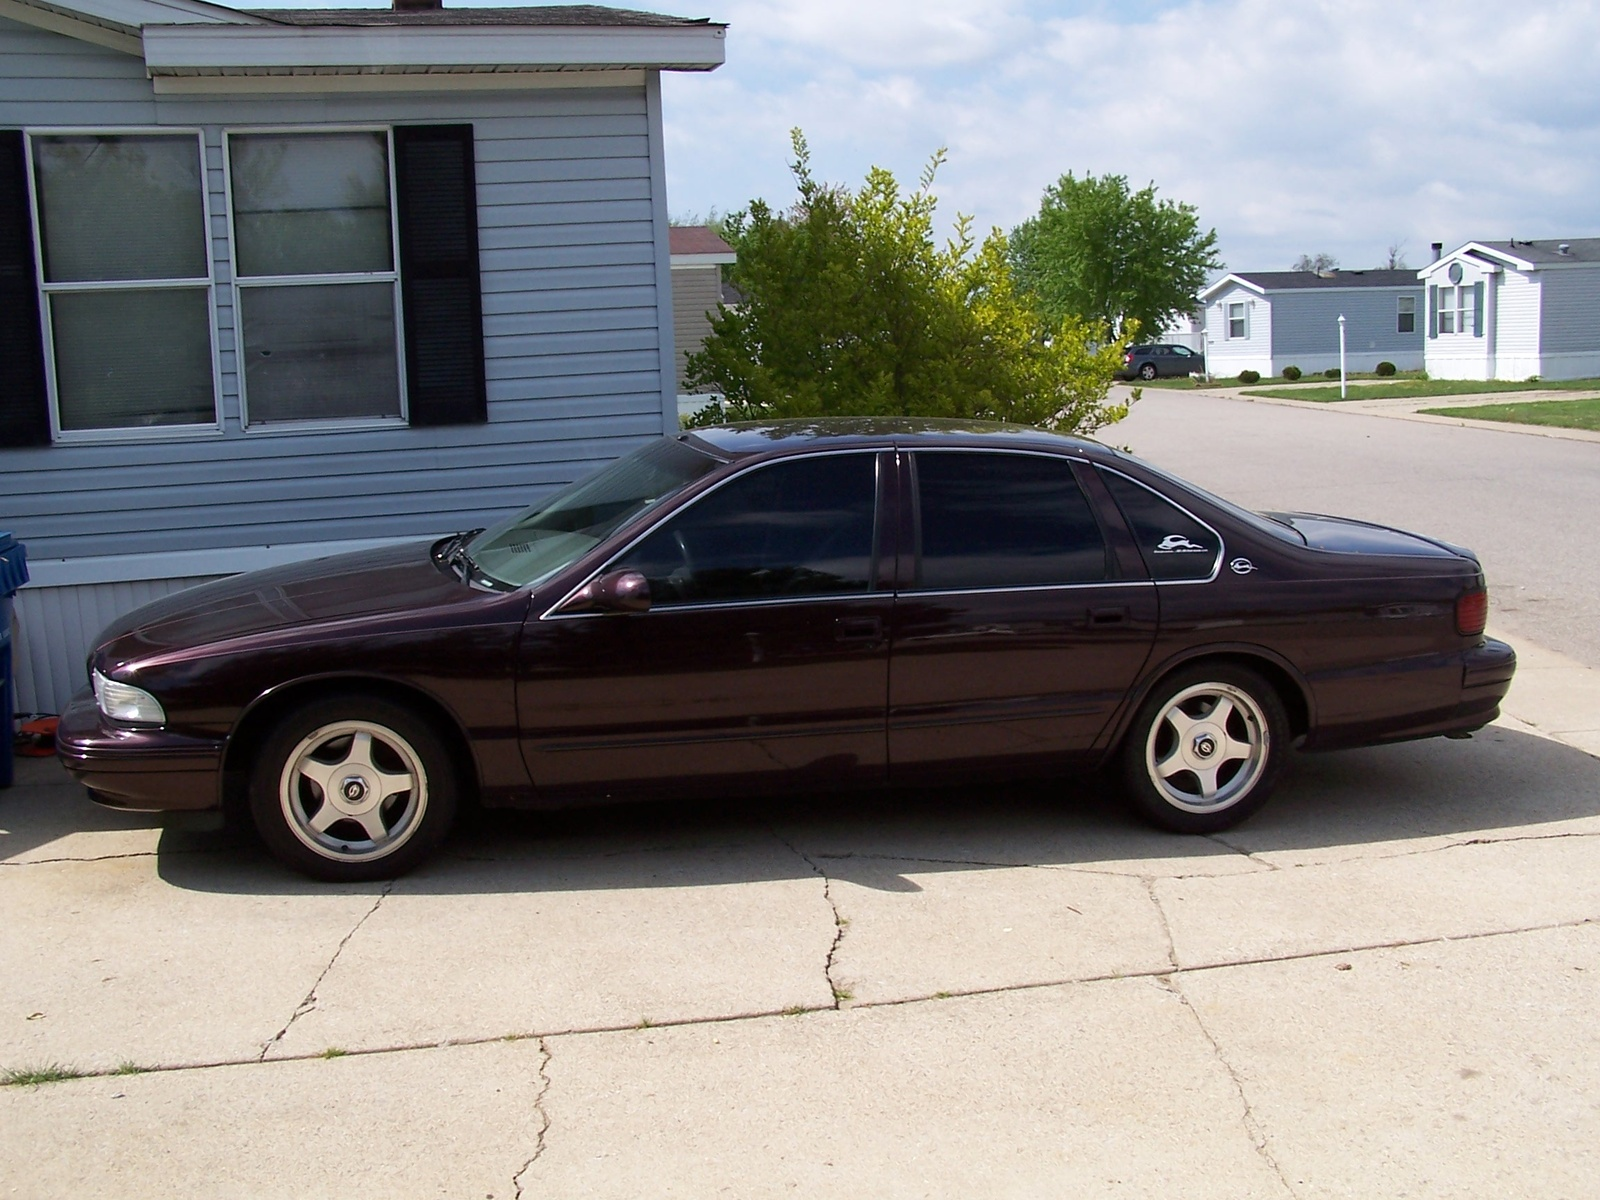 2001 Chevrolet Monte Carlo Pictures C872 pi36106751 moreover Watch furthermore 227077 1969 Impala Convertible moreover 1976 Chevrolet Pickup furthermore 2002 Chevrolet Camaro. on 2003 chevy impala on 22